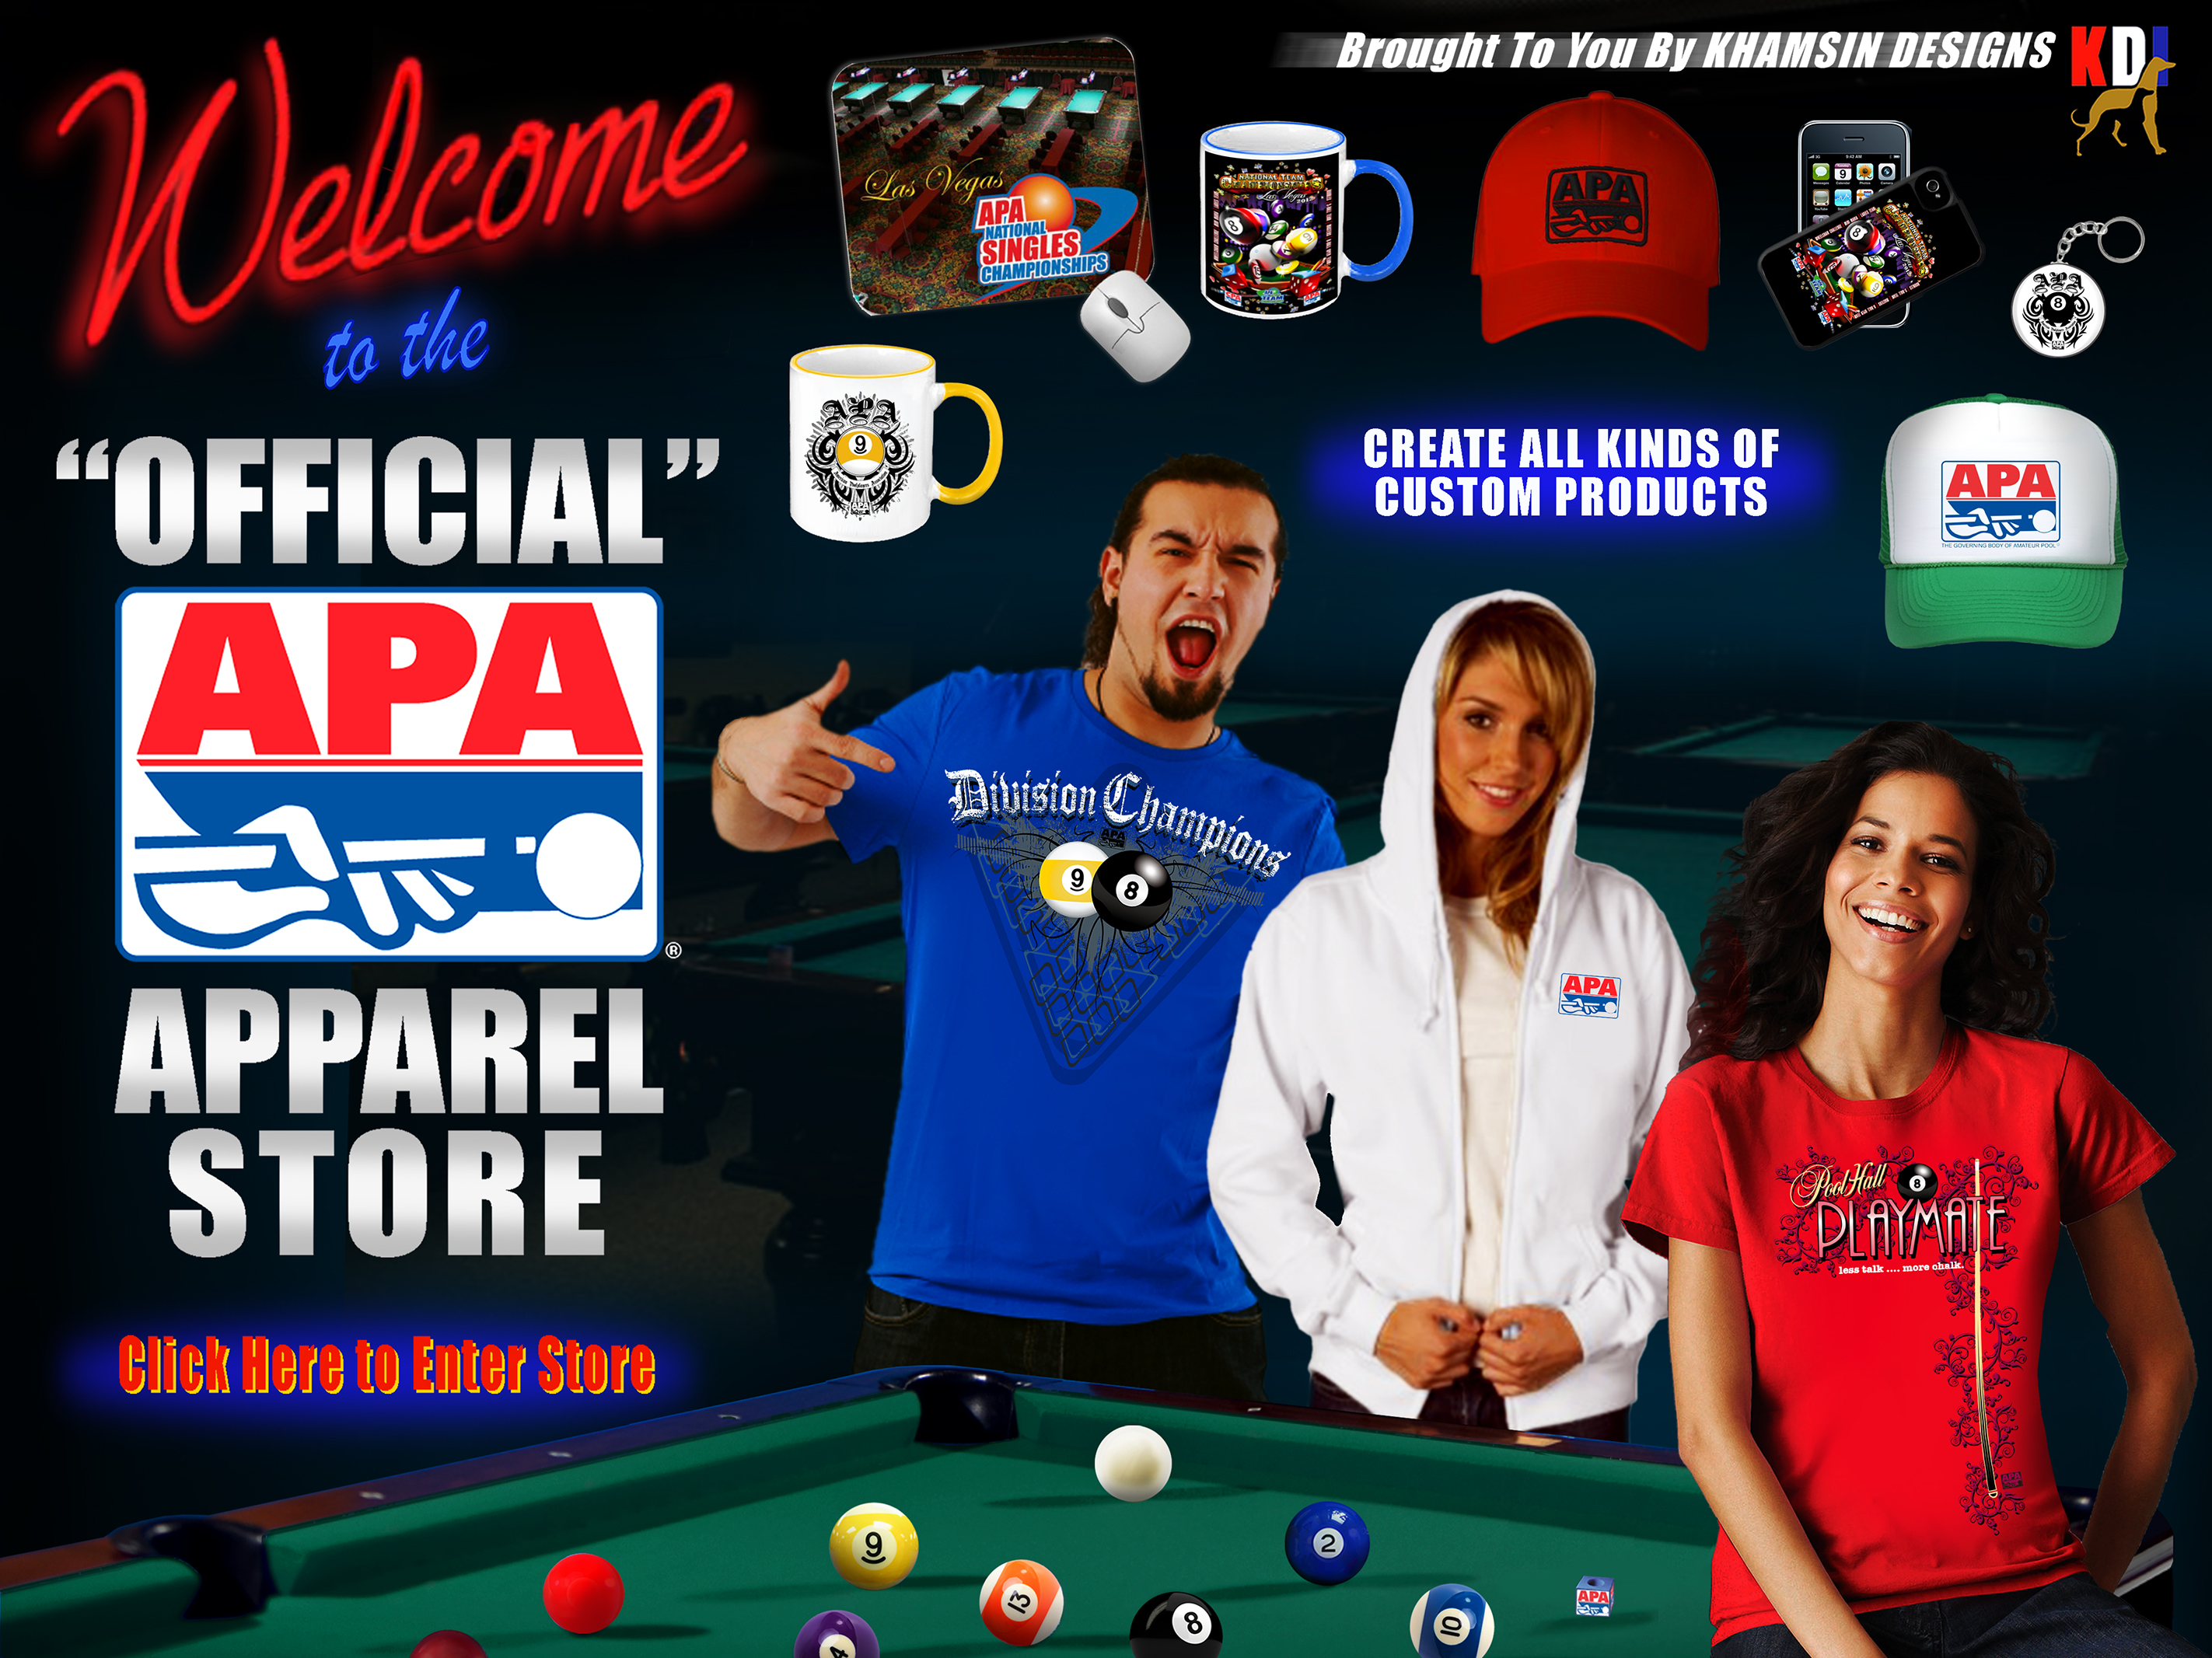 APA Apparel